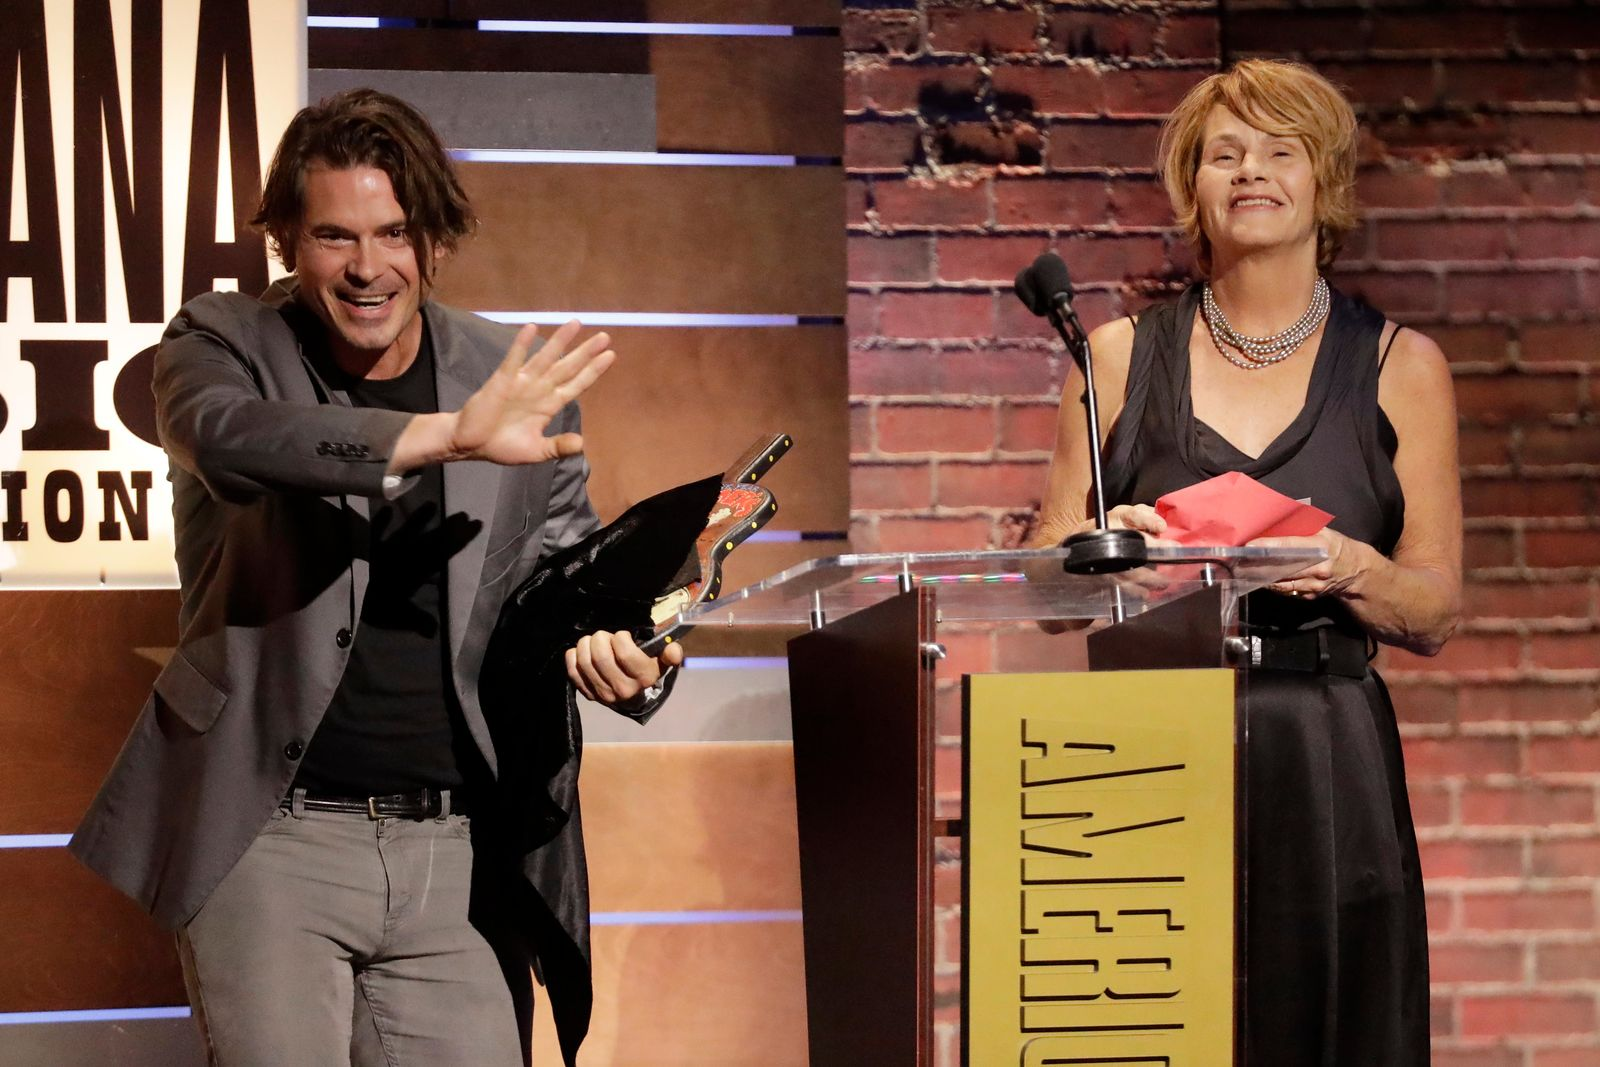 Ketch Secor and Shawn Colvin present the Song of the Year Award to John Prine at the Americana Honors & Awards show, Wednesday, Sept. 11, 2019, in Nashville, Tenn. (AP Photo/Wade Payne)